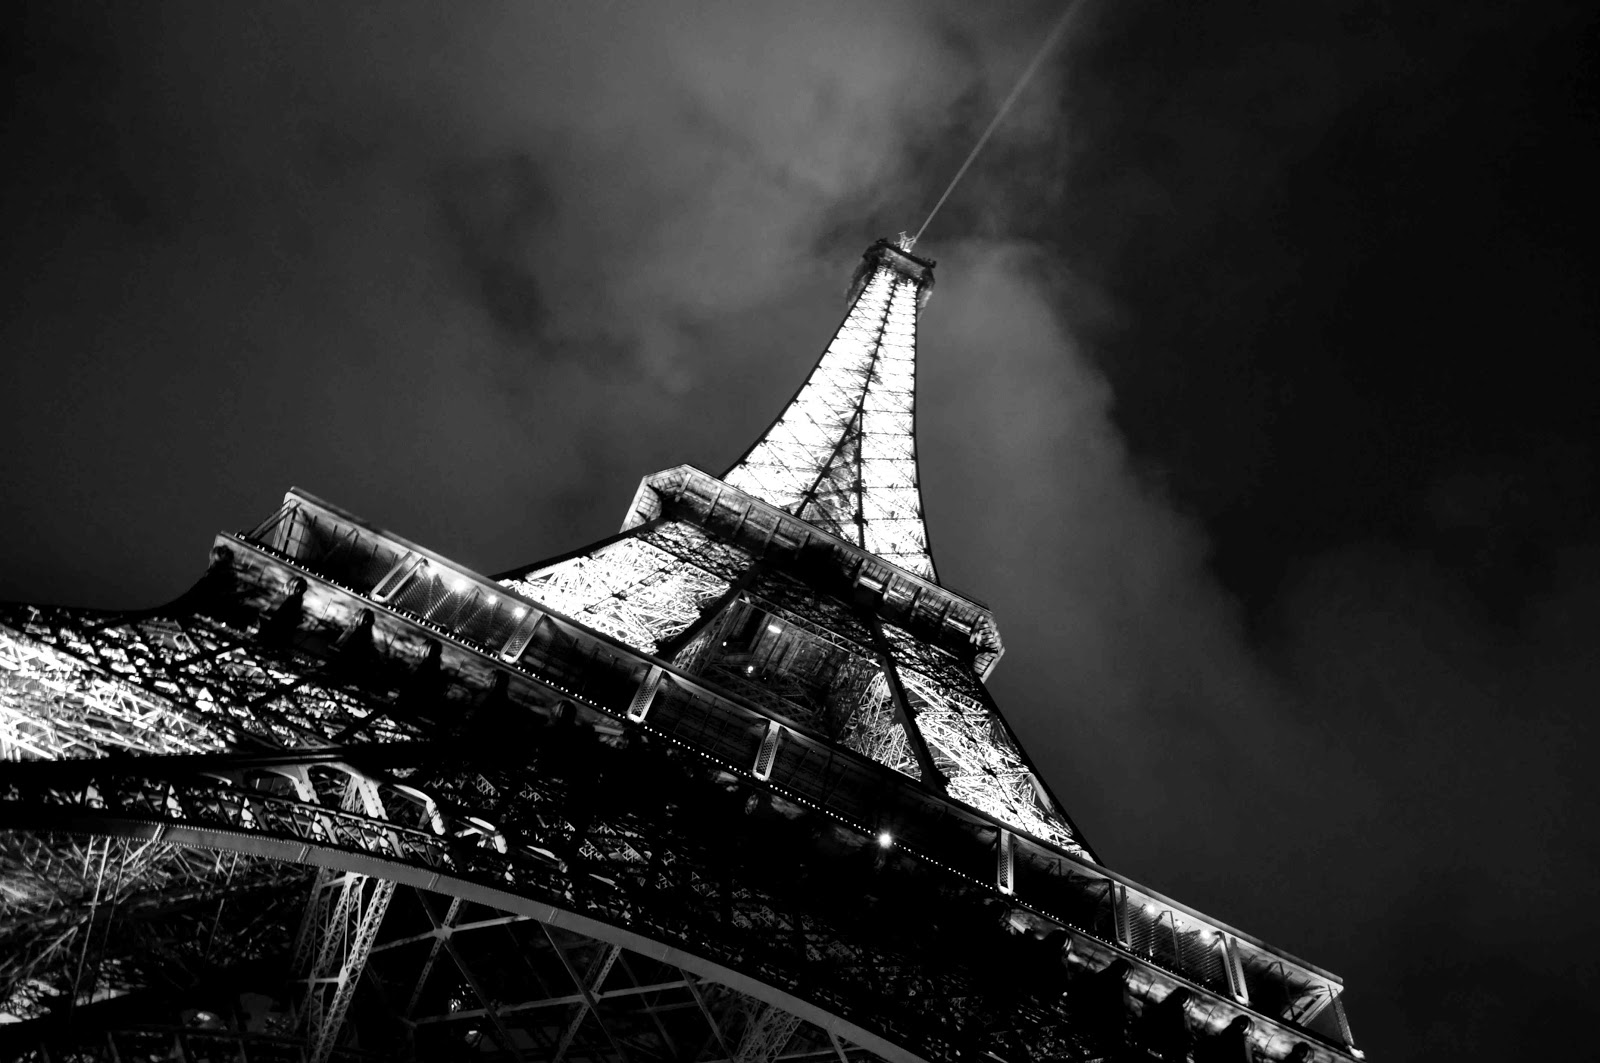 Wonderful Wallpaper High Quality Black And White - Eiffel-tower-paris-black-and-white-photos-07  Perfect Image Reference_371161.jpg